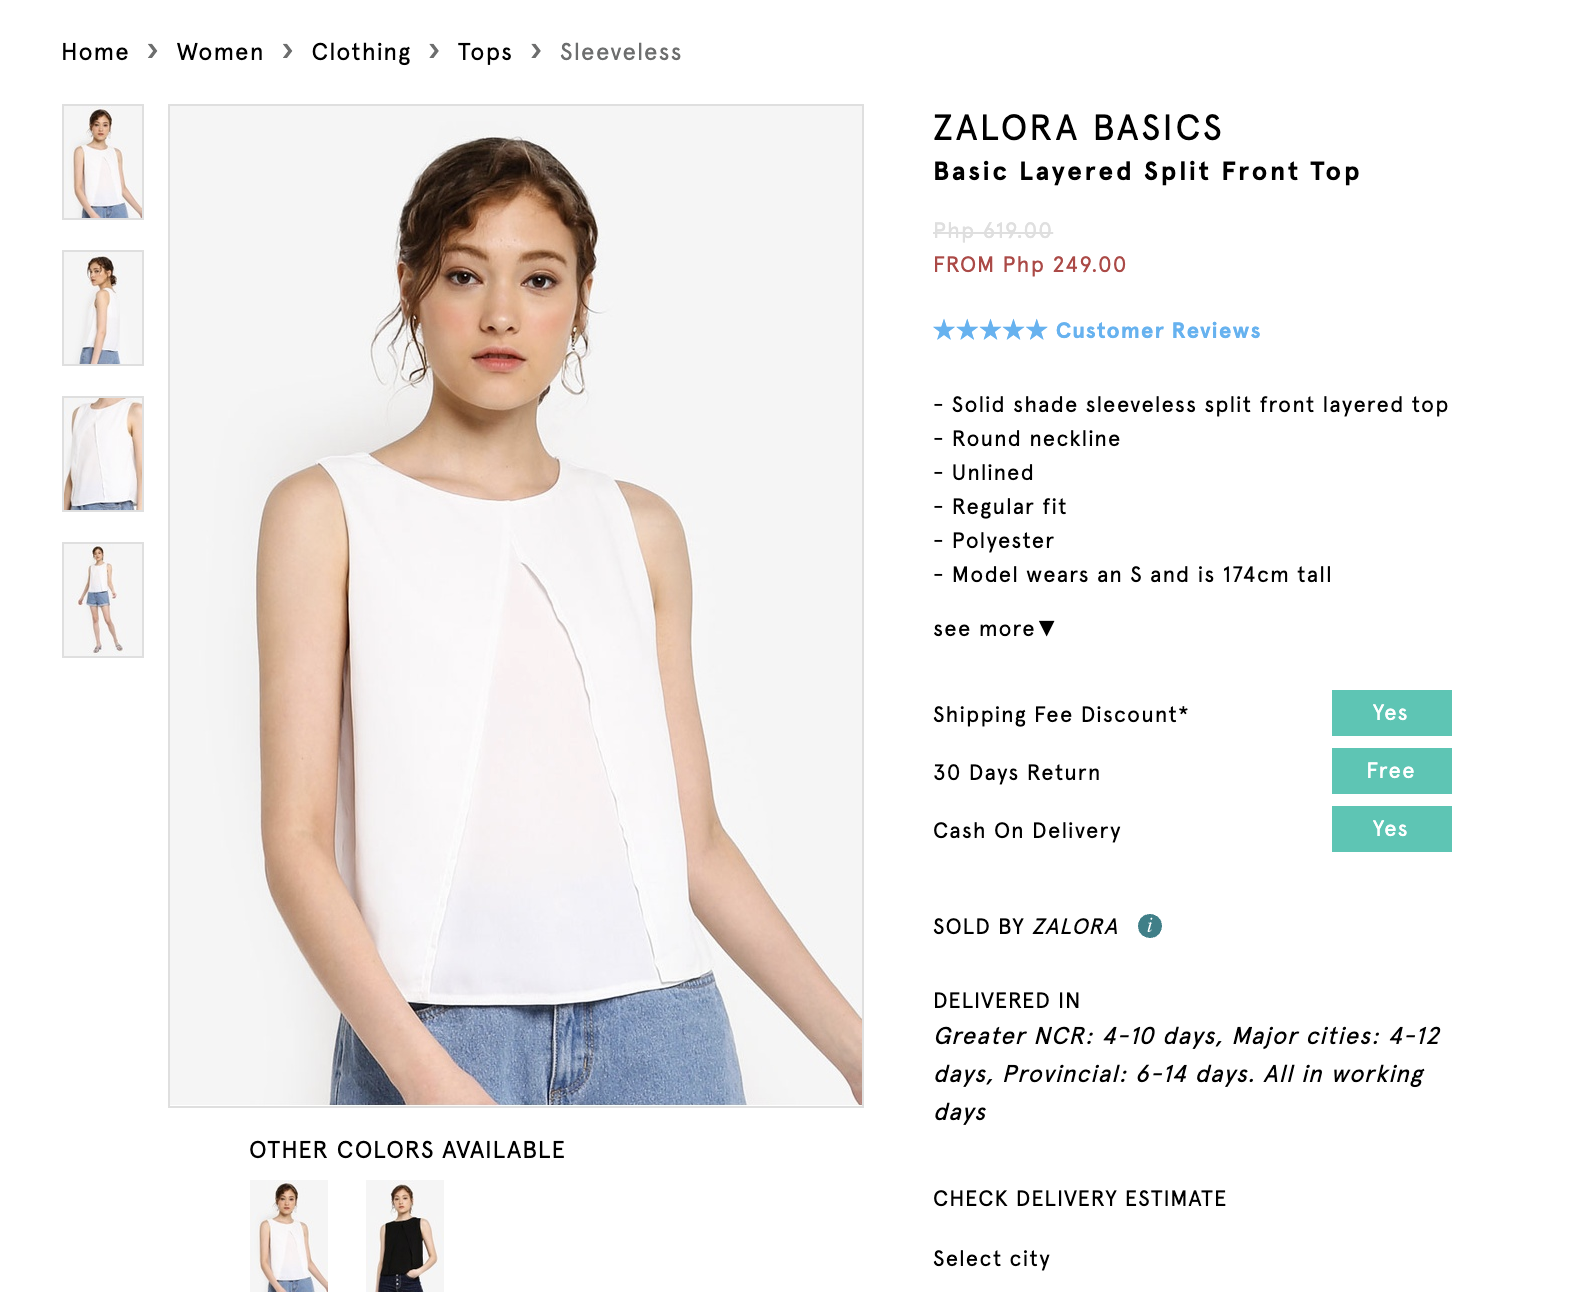 Screenshot of Zalora Basics Basic Layered Split Top